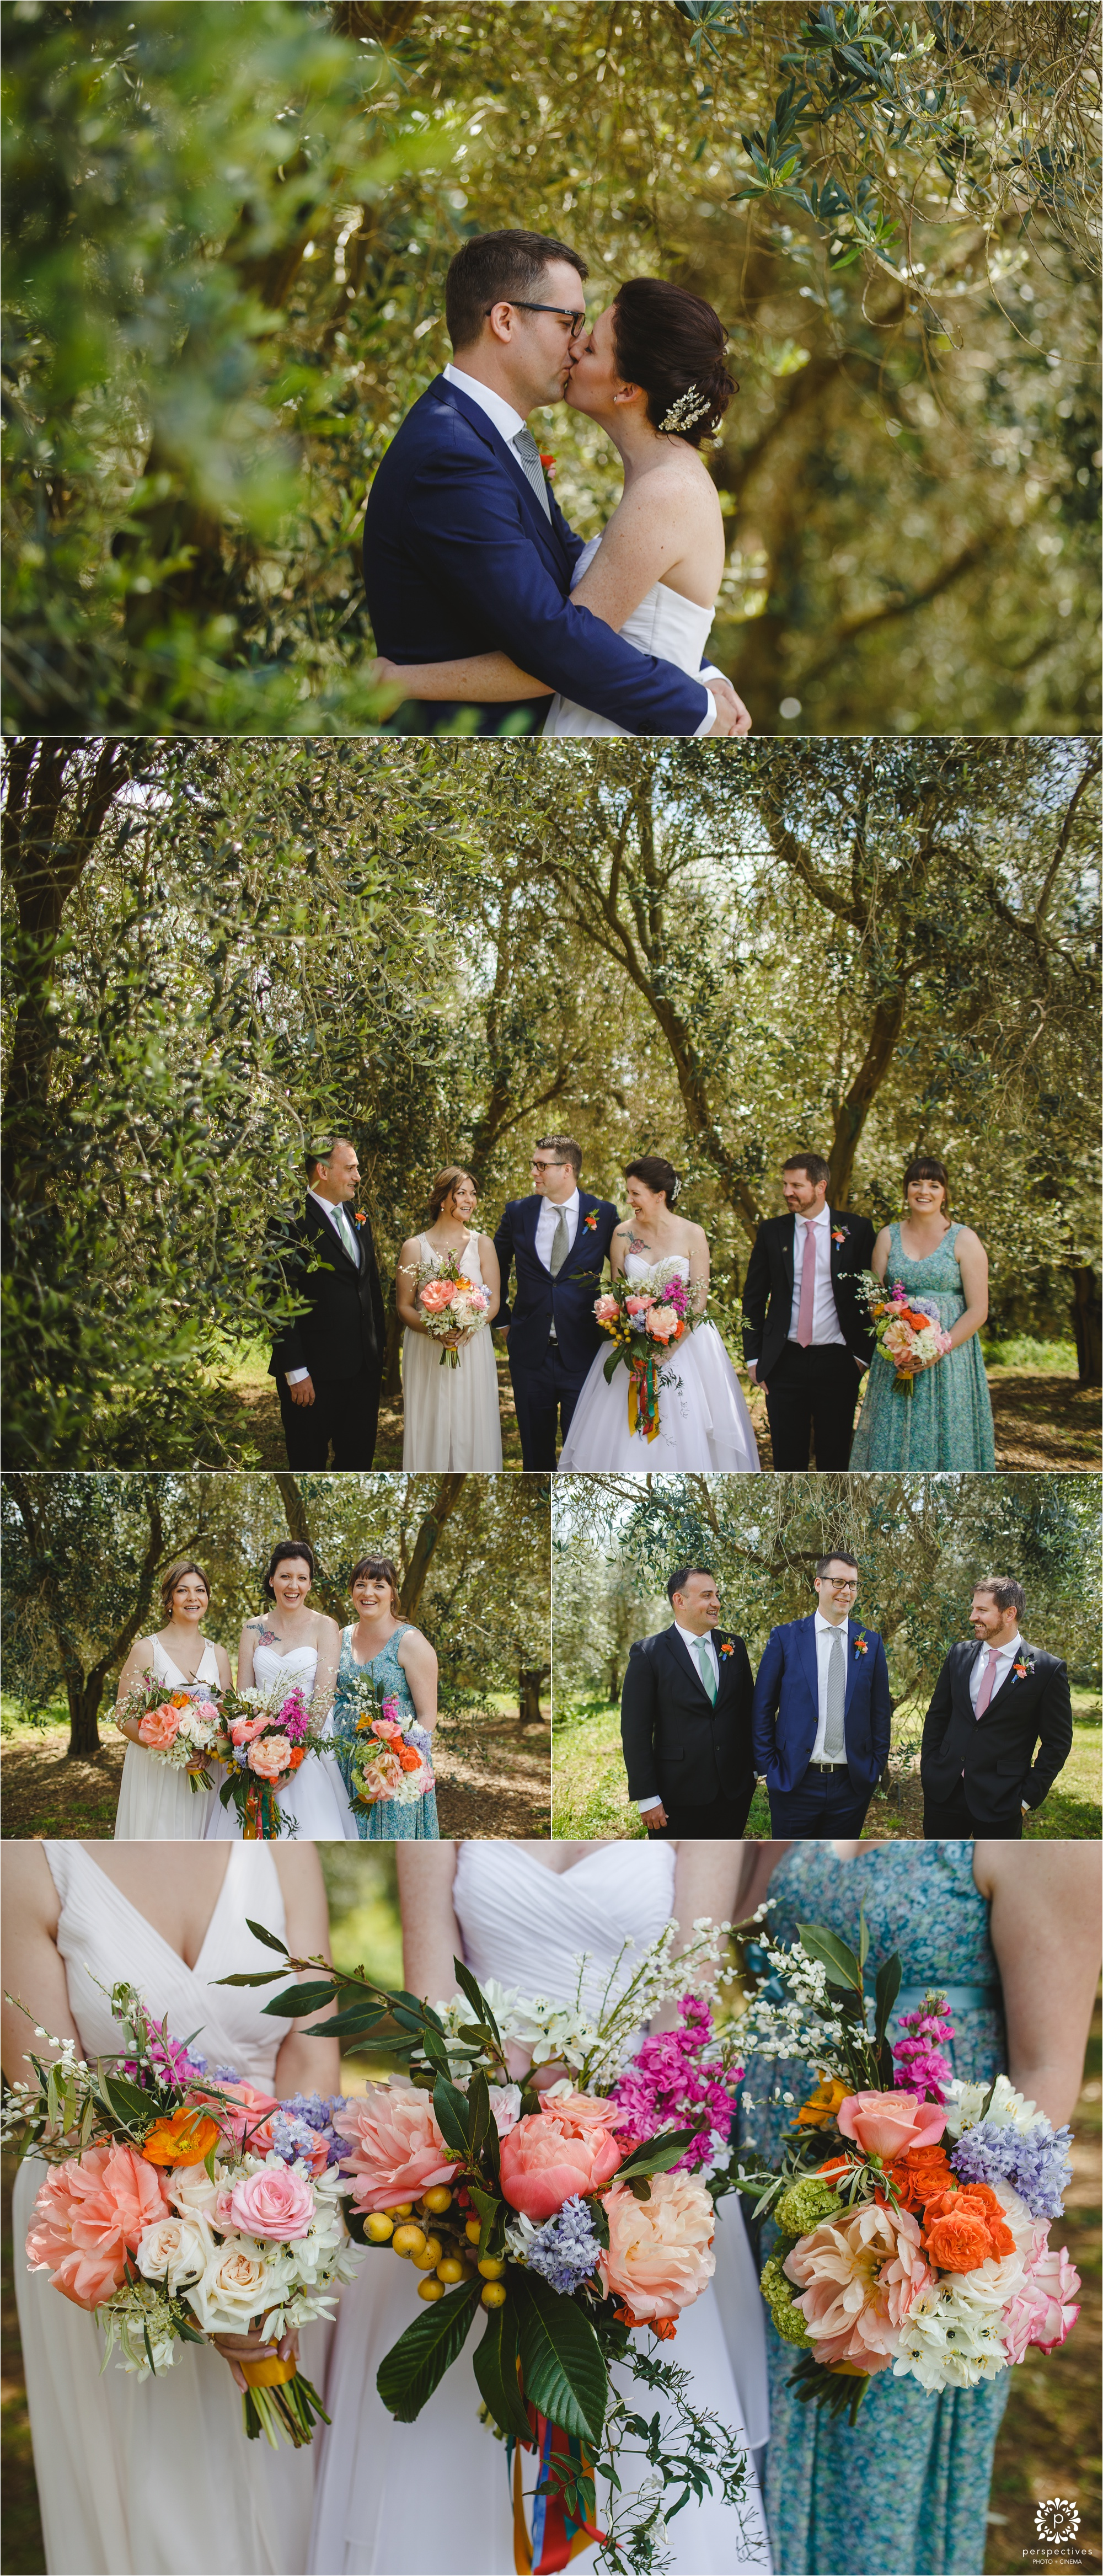 bracu_wedding_photos_0007